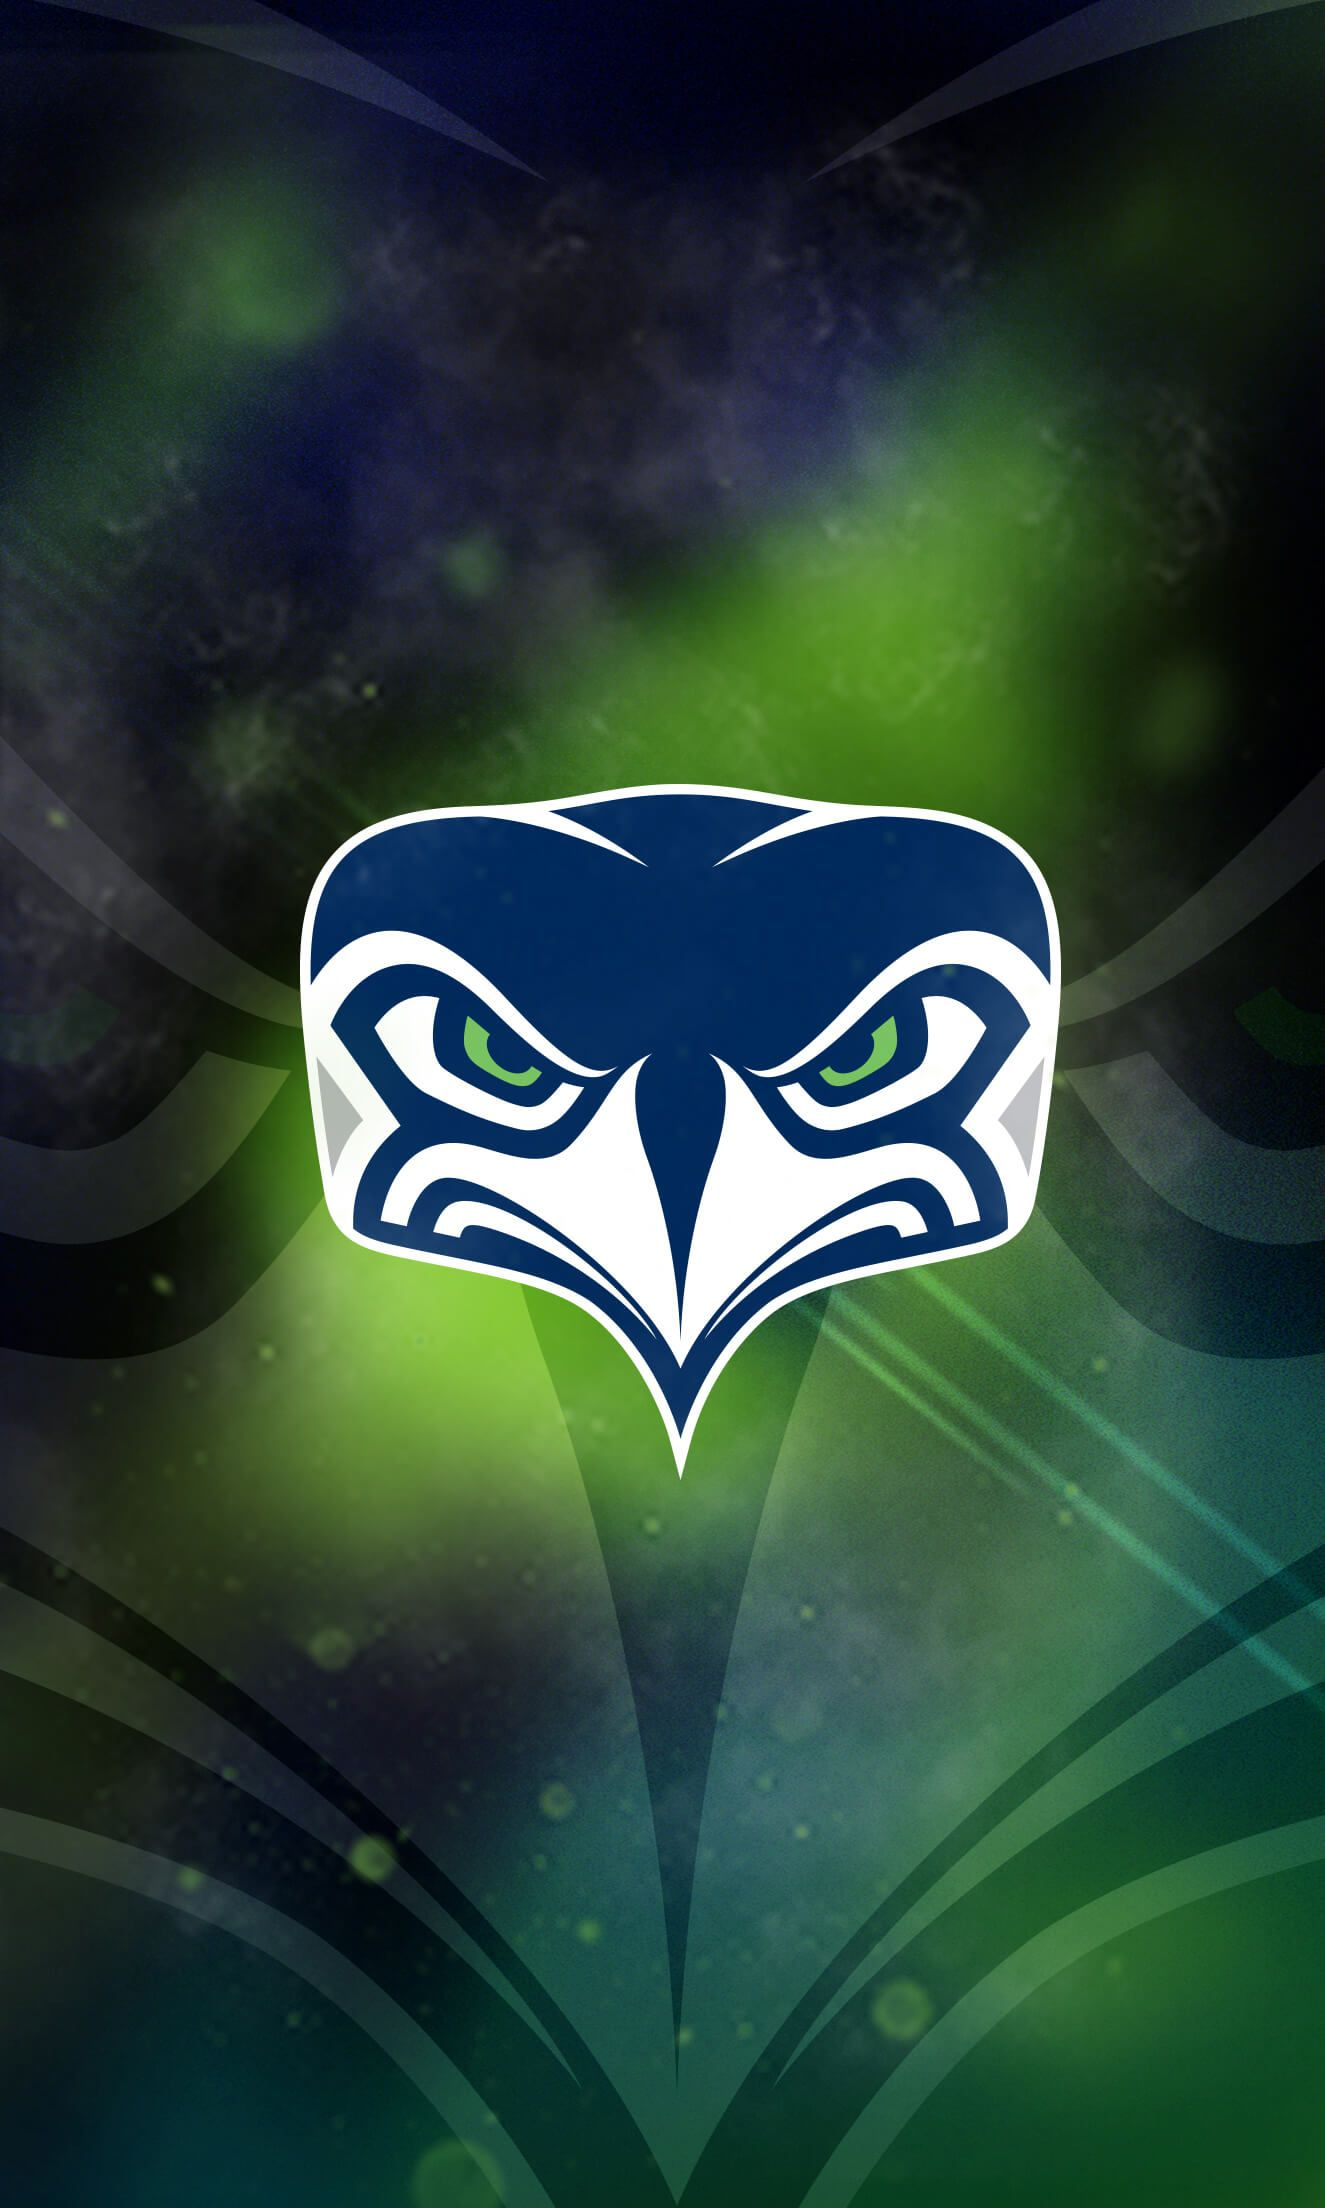 Seattle Seahawks Wallpapers Mywallpapers Site In 2020 Seahawks Seattle Seahawks Green Bay Packers Wallpaper